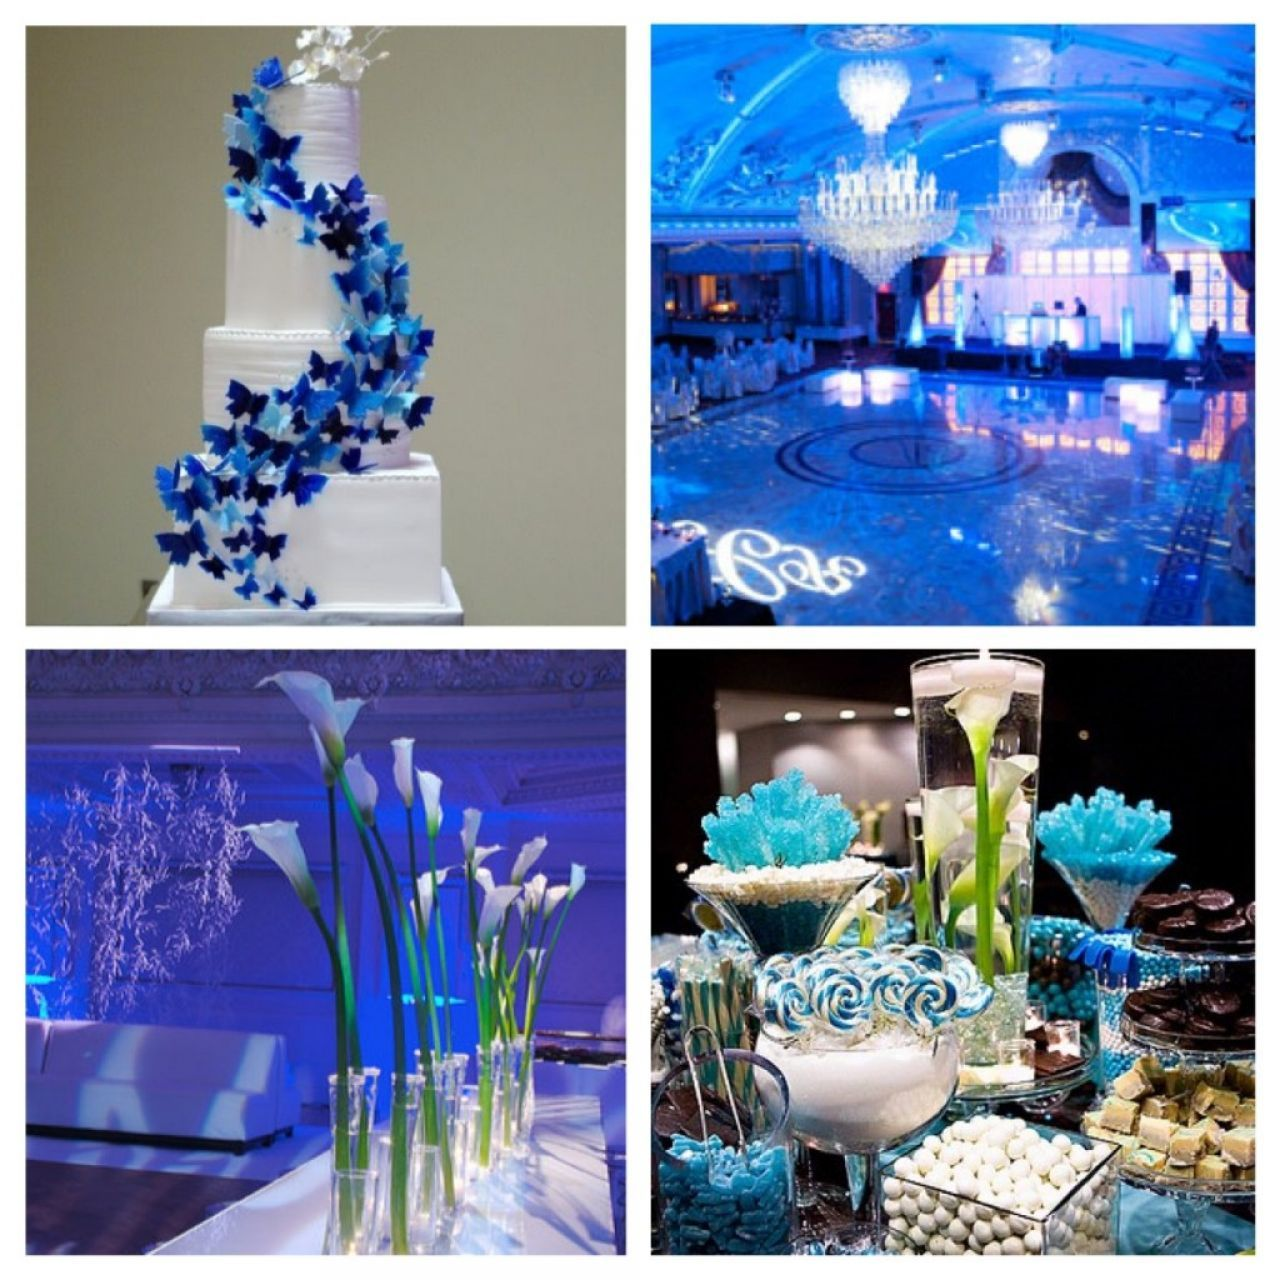 Wedding Decoration Theme Ideas Part - 46: Royal Blue Wedding Centerpieces | 14 Photos Of The Royal Blue Wedding  Decorations Theme And Ideas